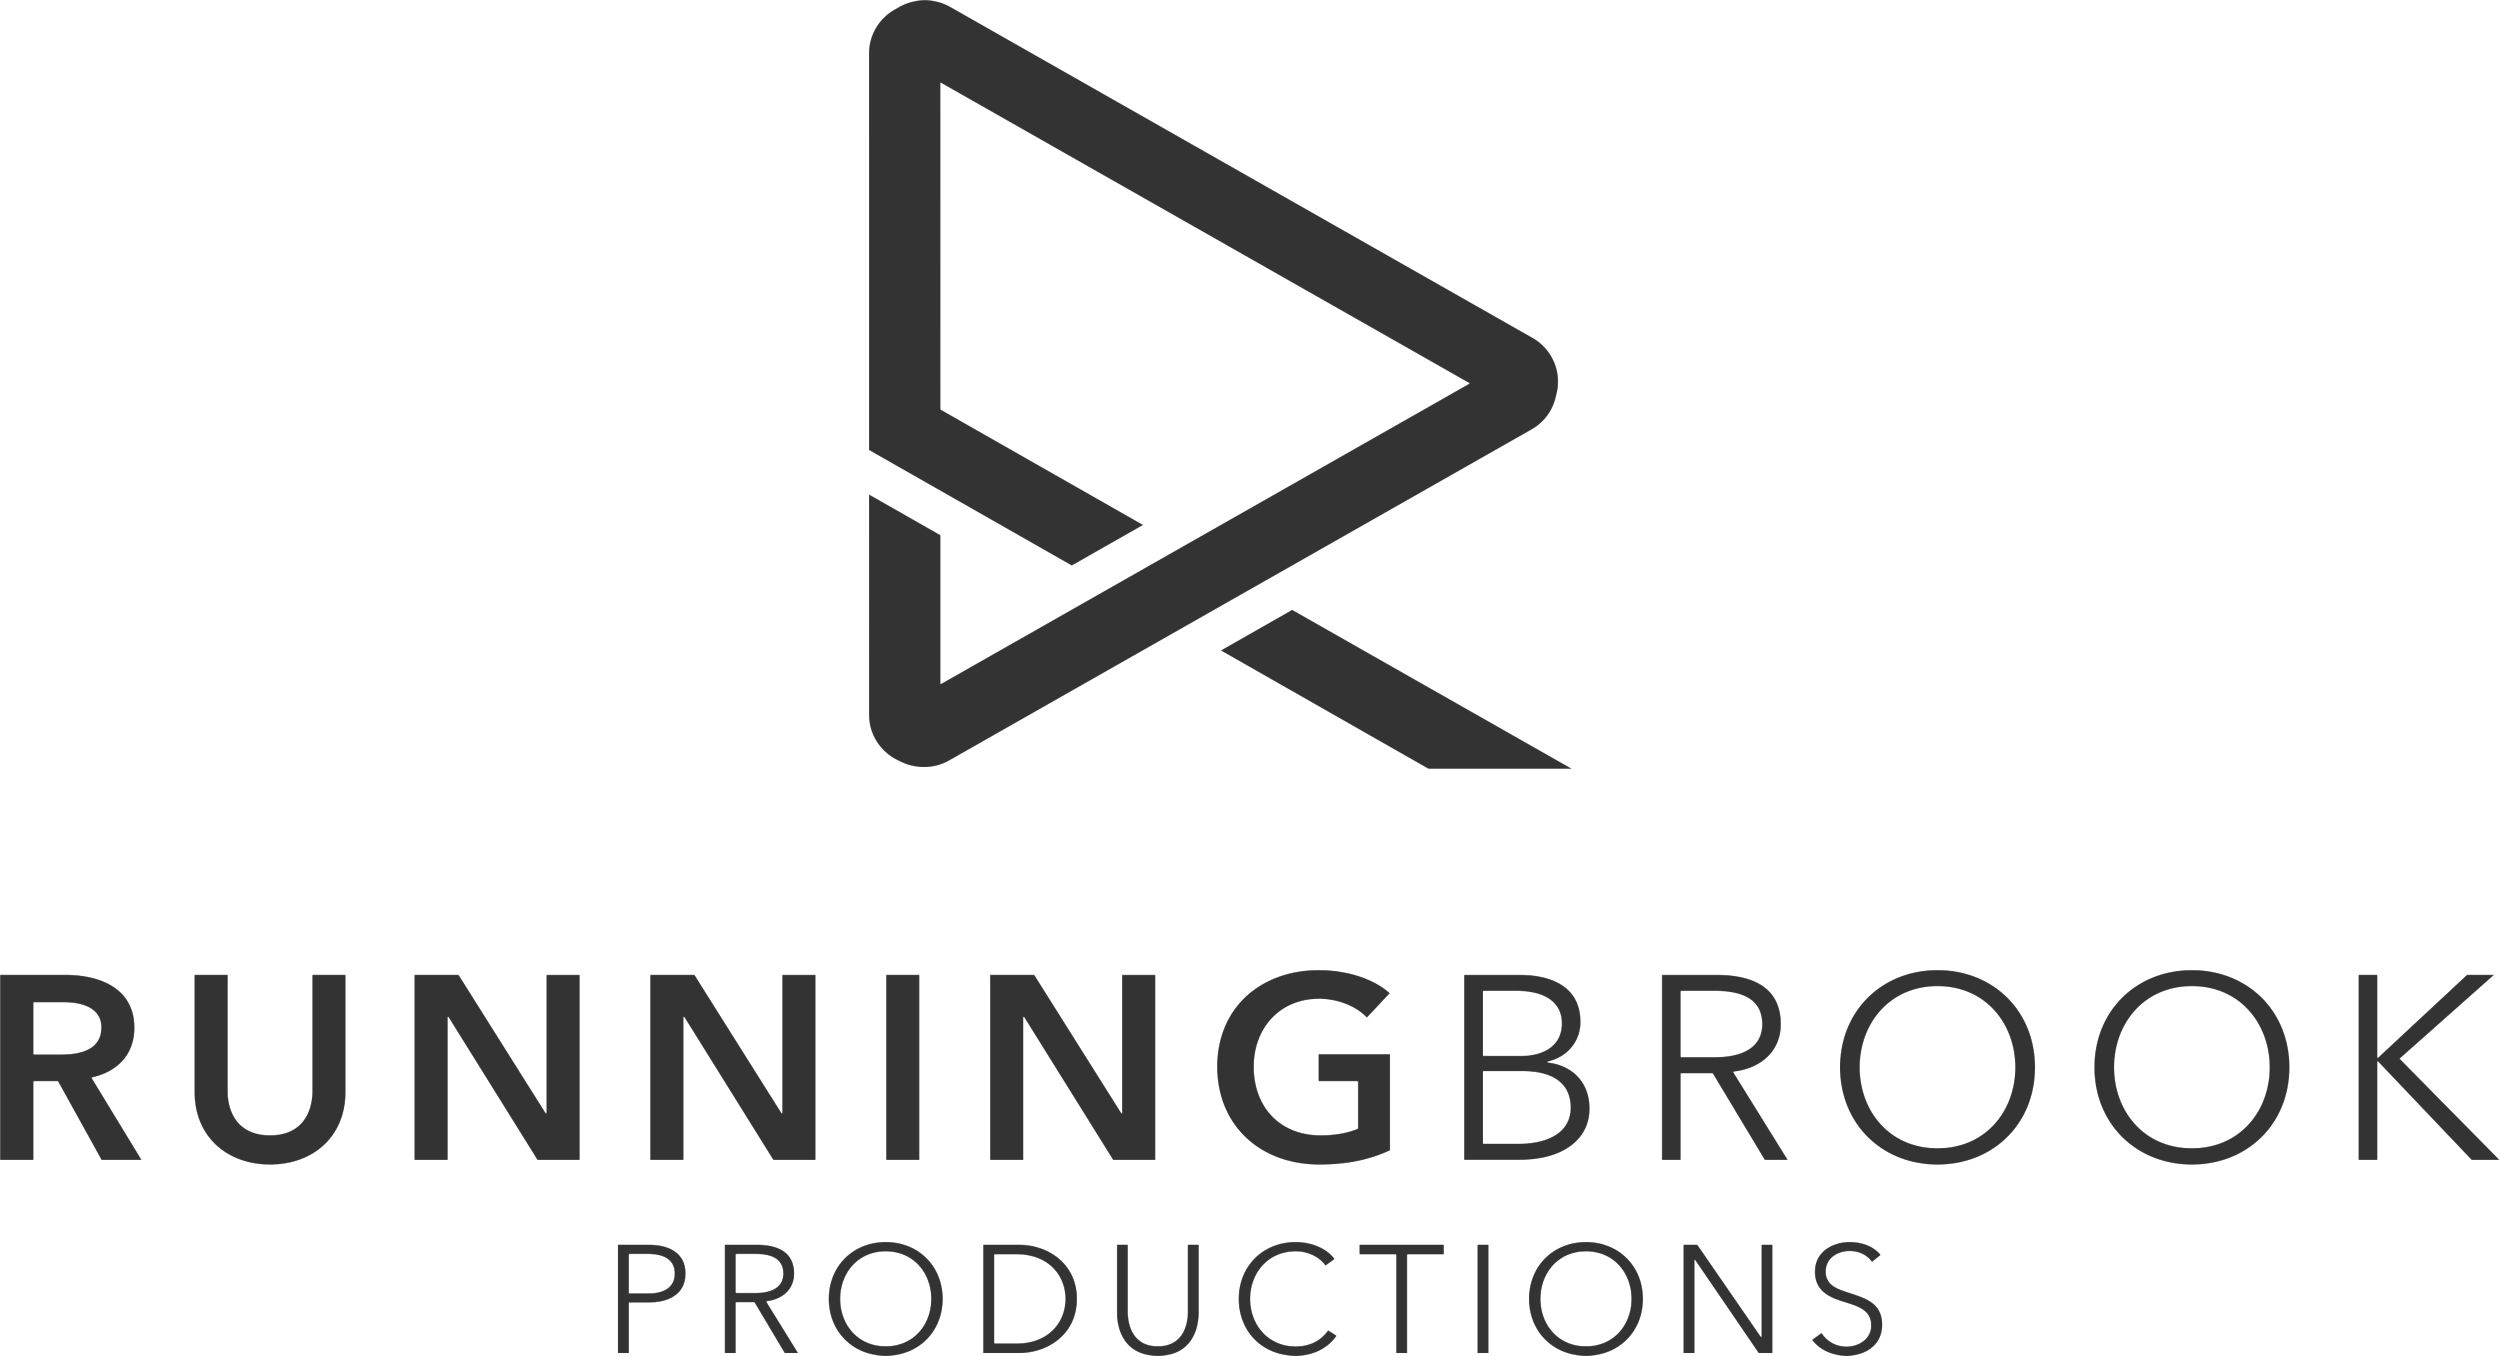 Running Brook Productions_Black Logo.png